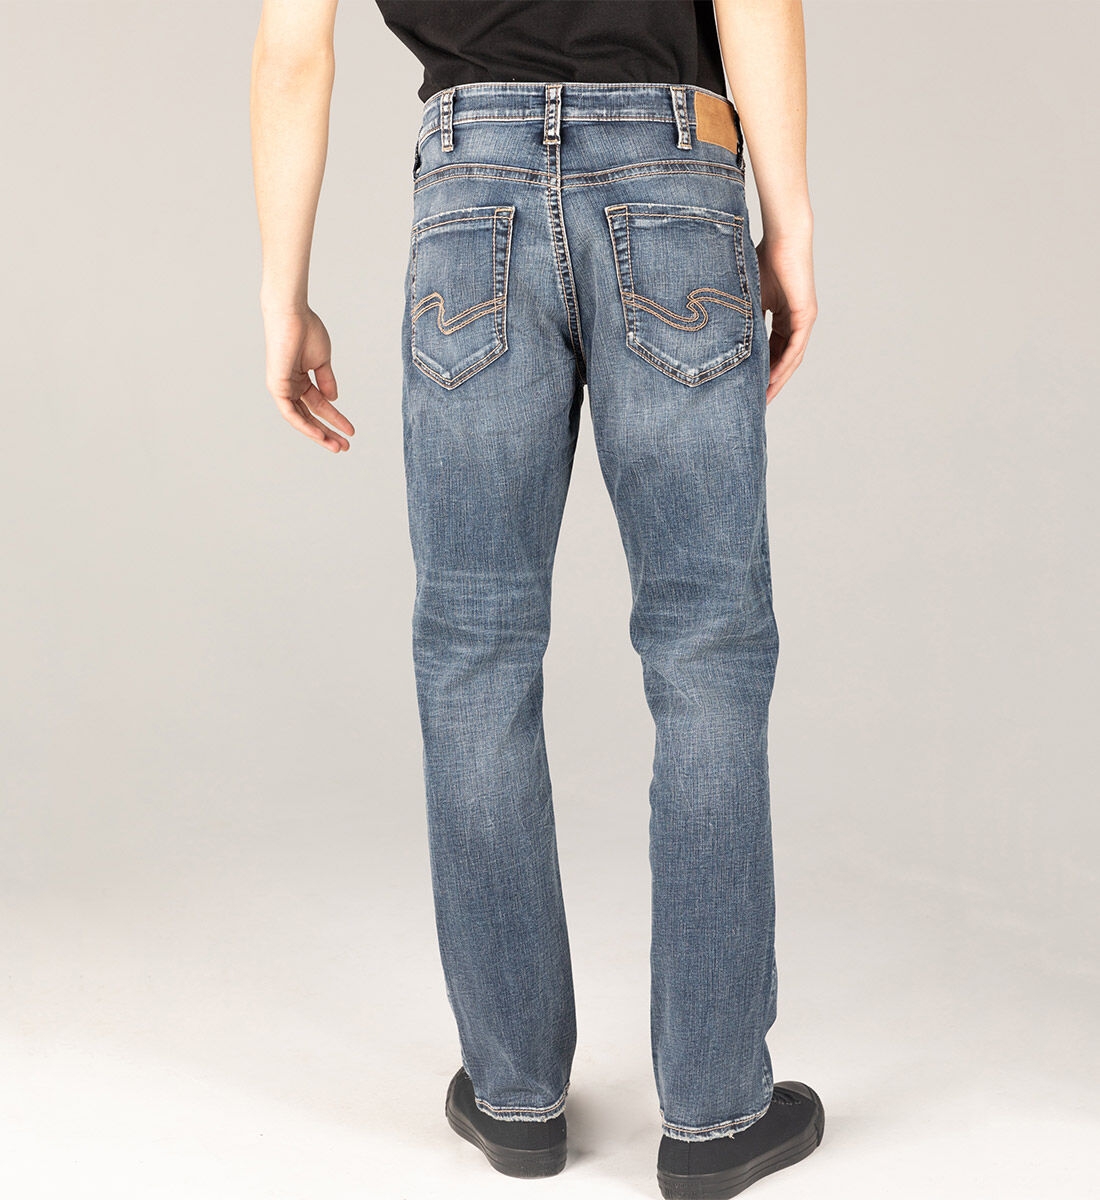 Grayson Easy Fit Straight Leg Jeans Big & Tall Back